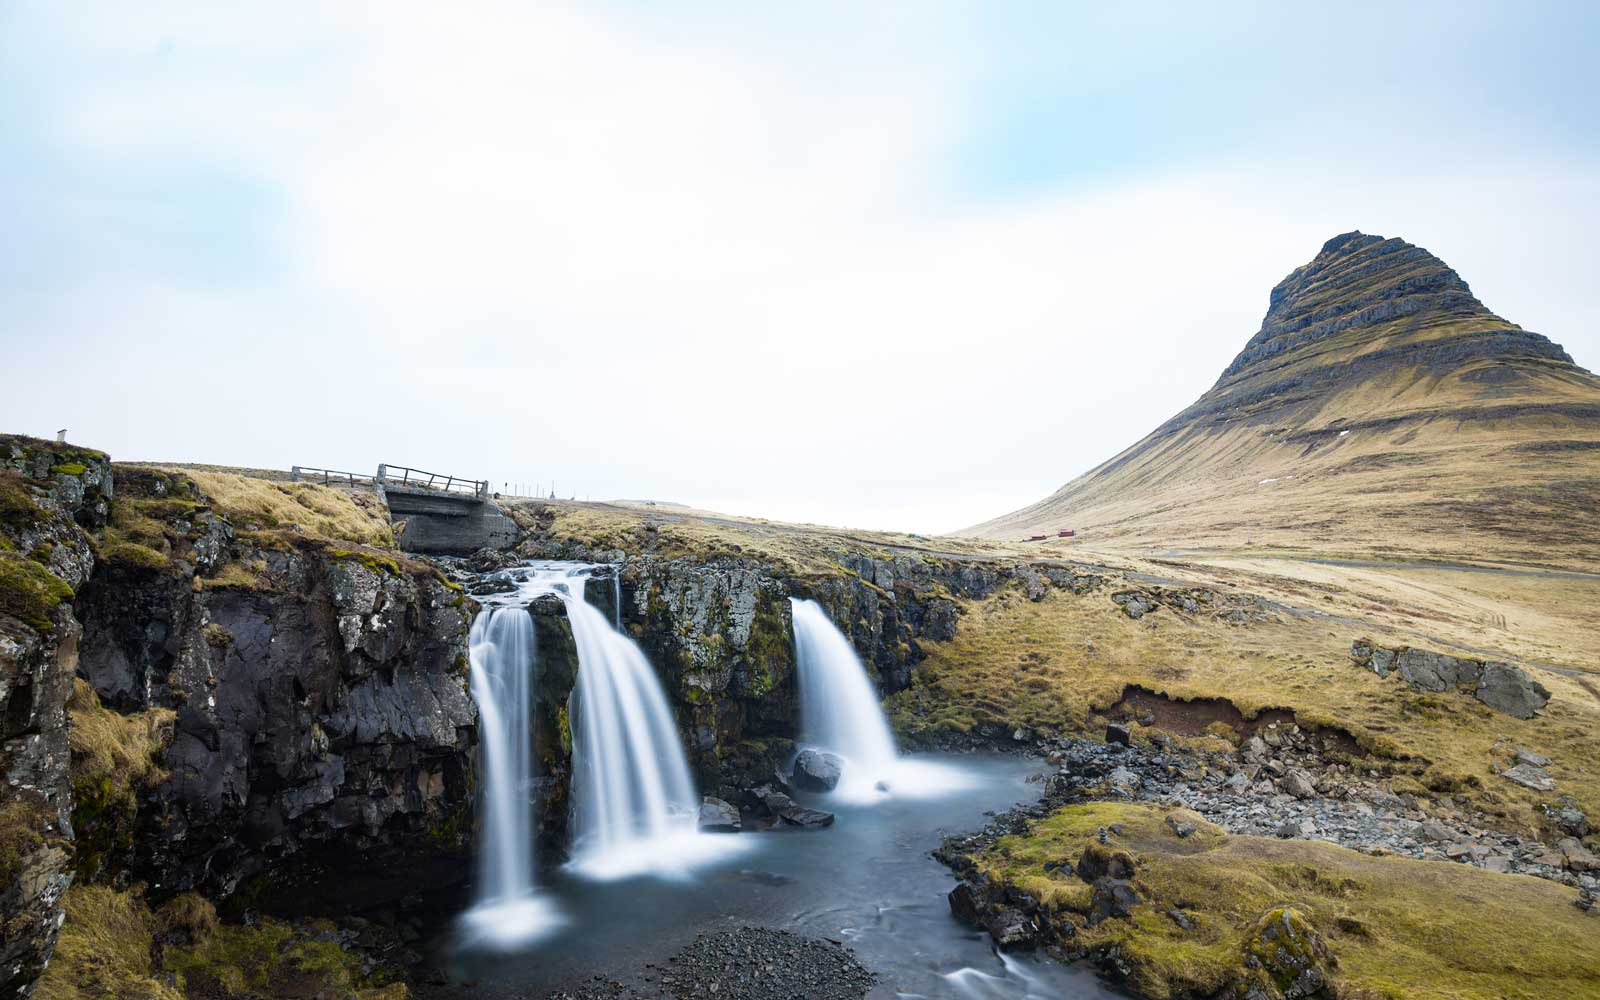 19 Instagrams That Will Convince You to Take a Stopover Vacation in Iceland